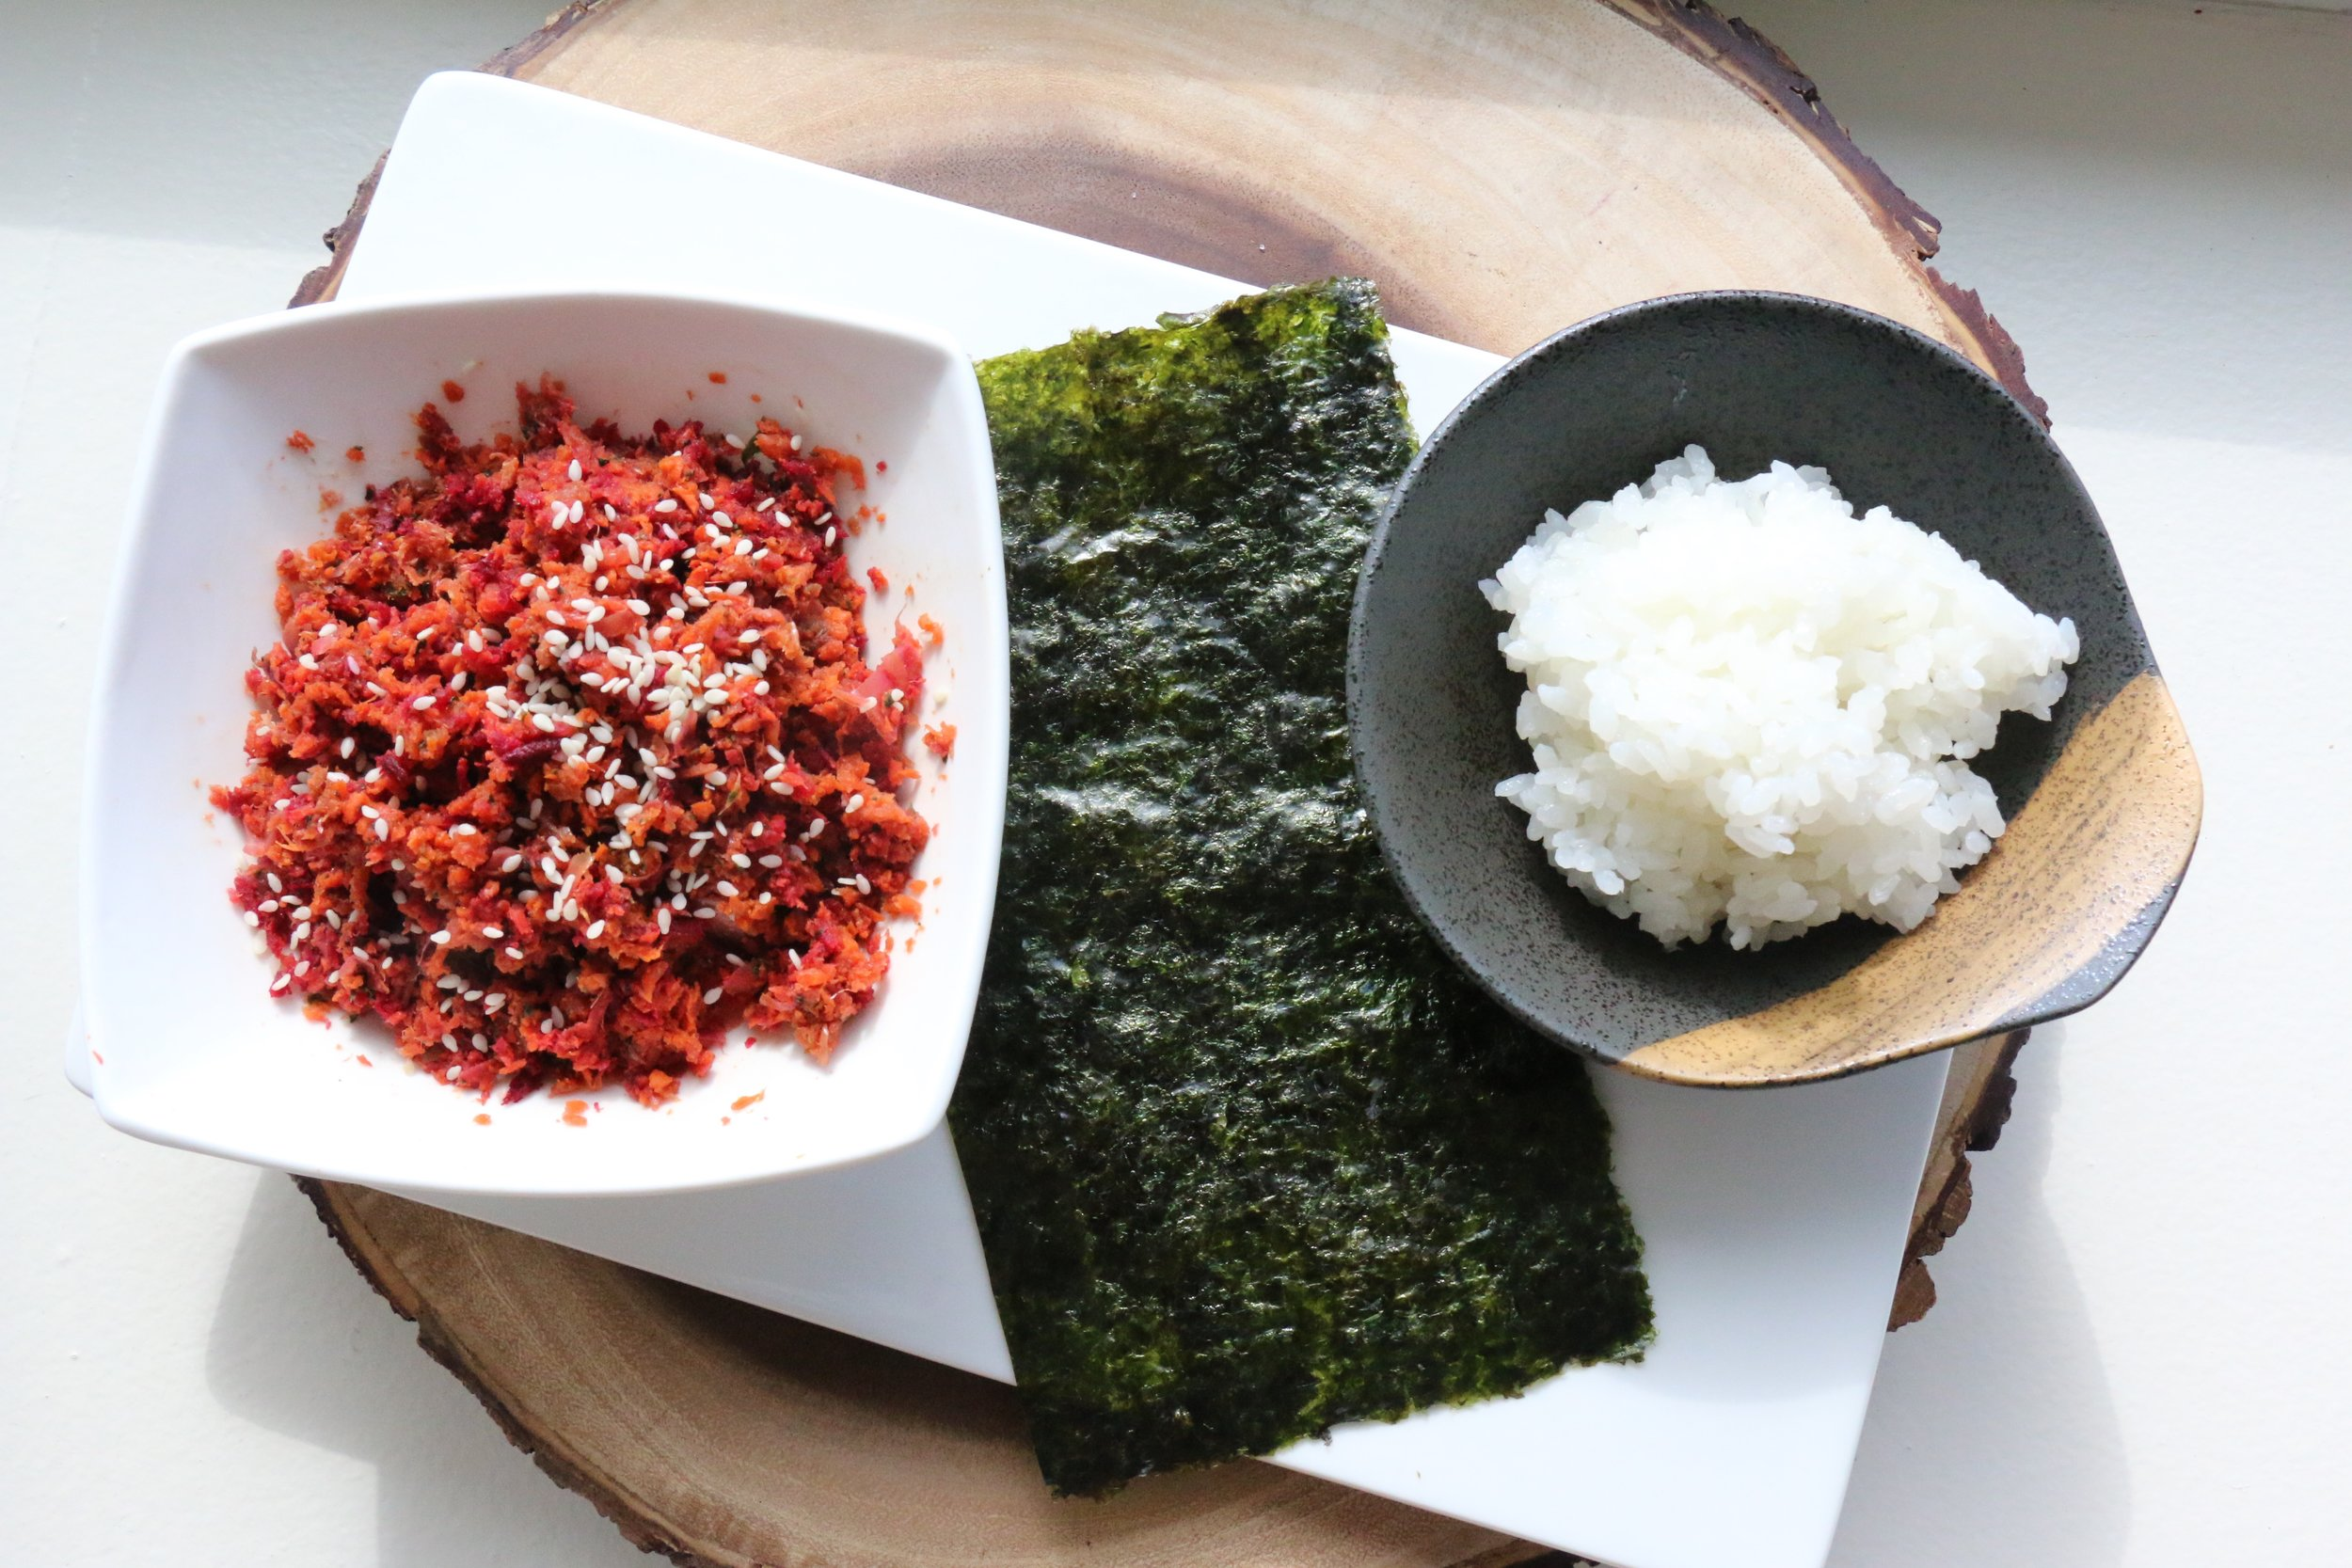 Everything you need to make these rolls: cooked and seasoned sushi rice, beet pulp mixture, and toasted nori